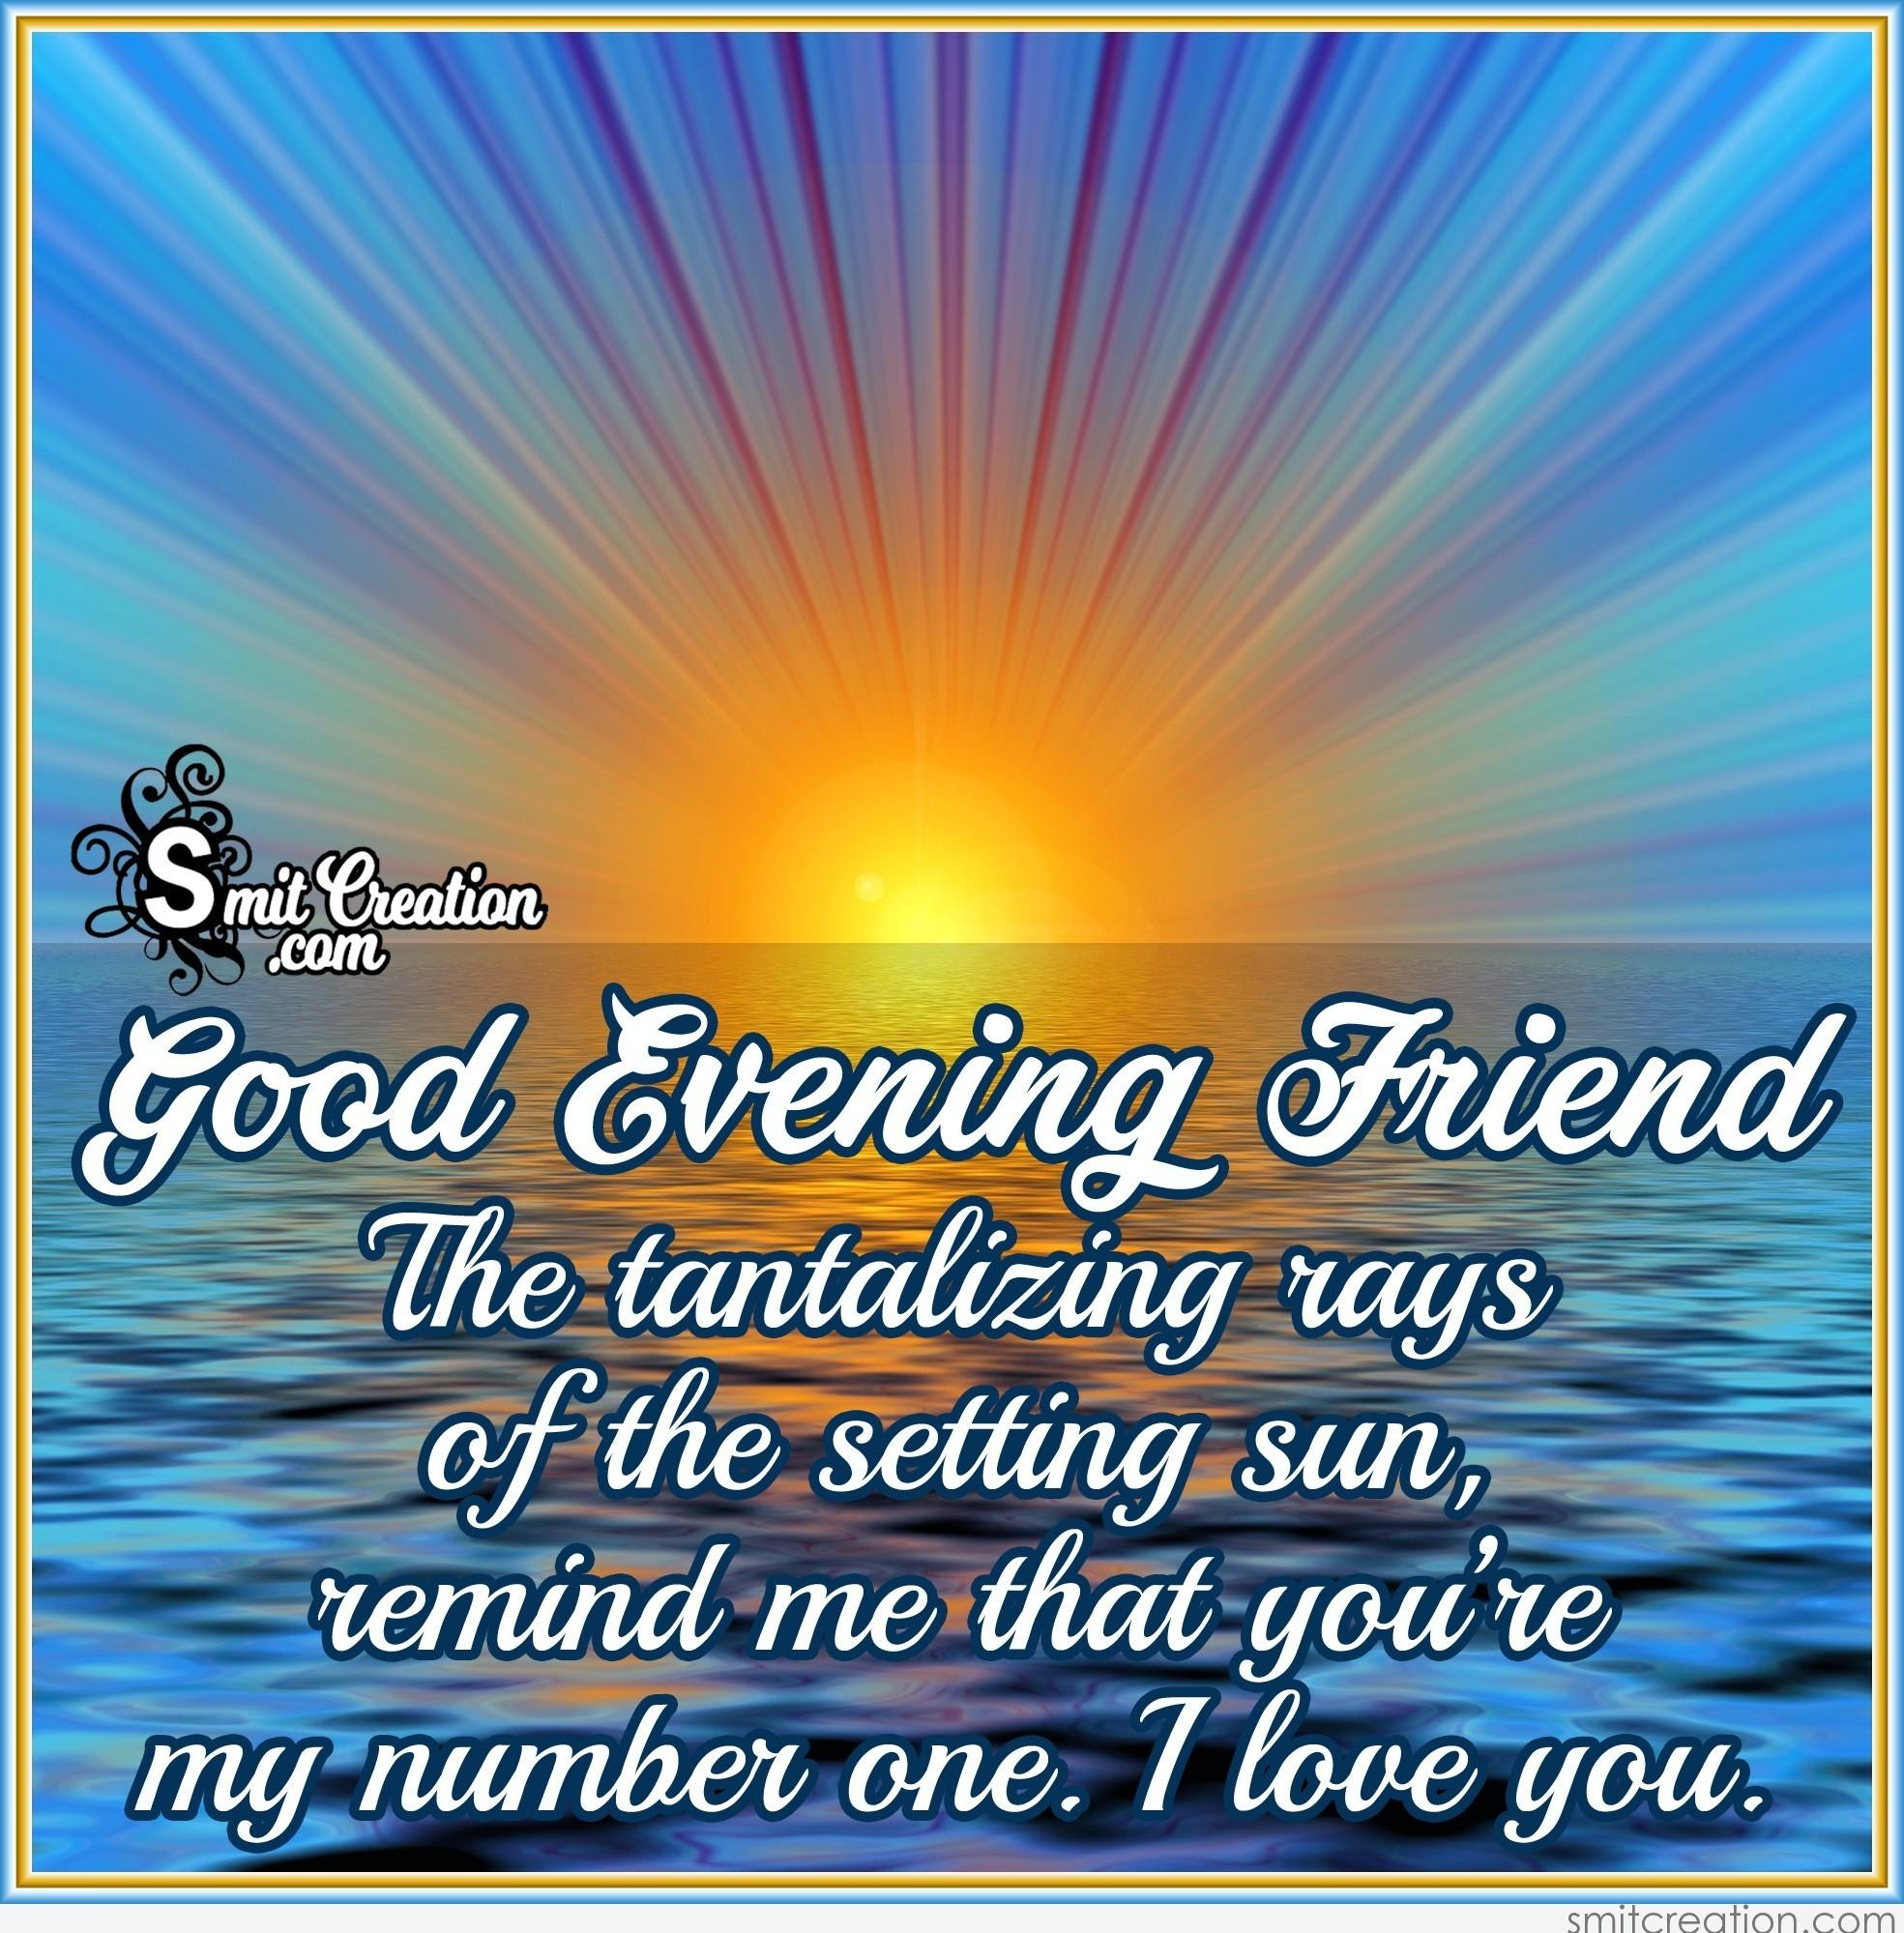 Good Evening Friend Pictures And Graphics Smitcreation